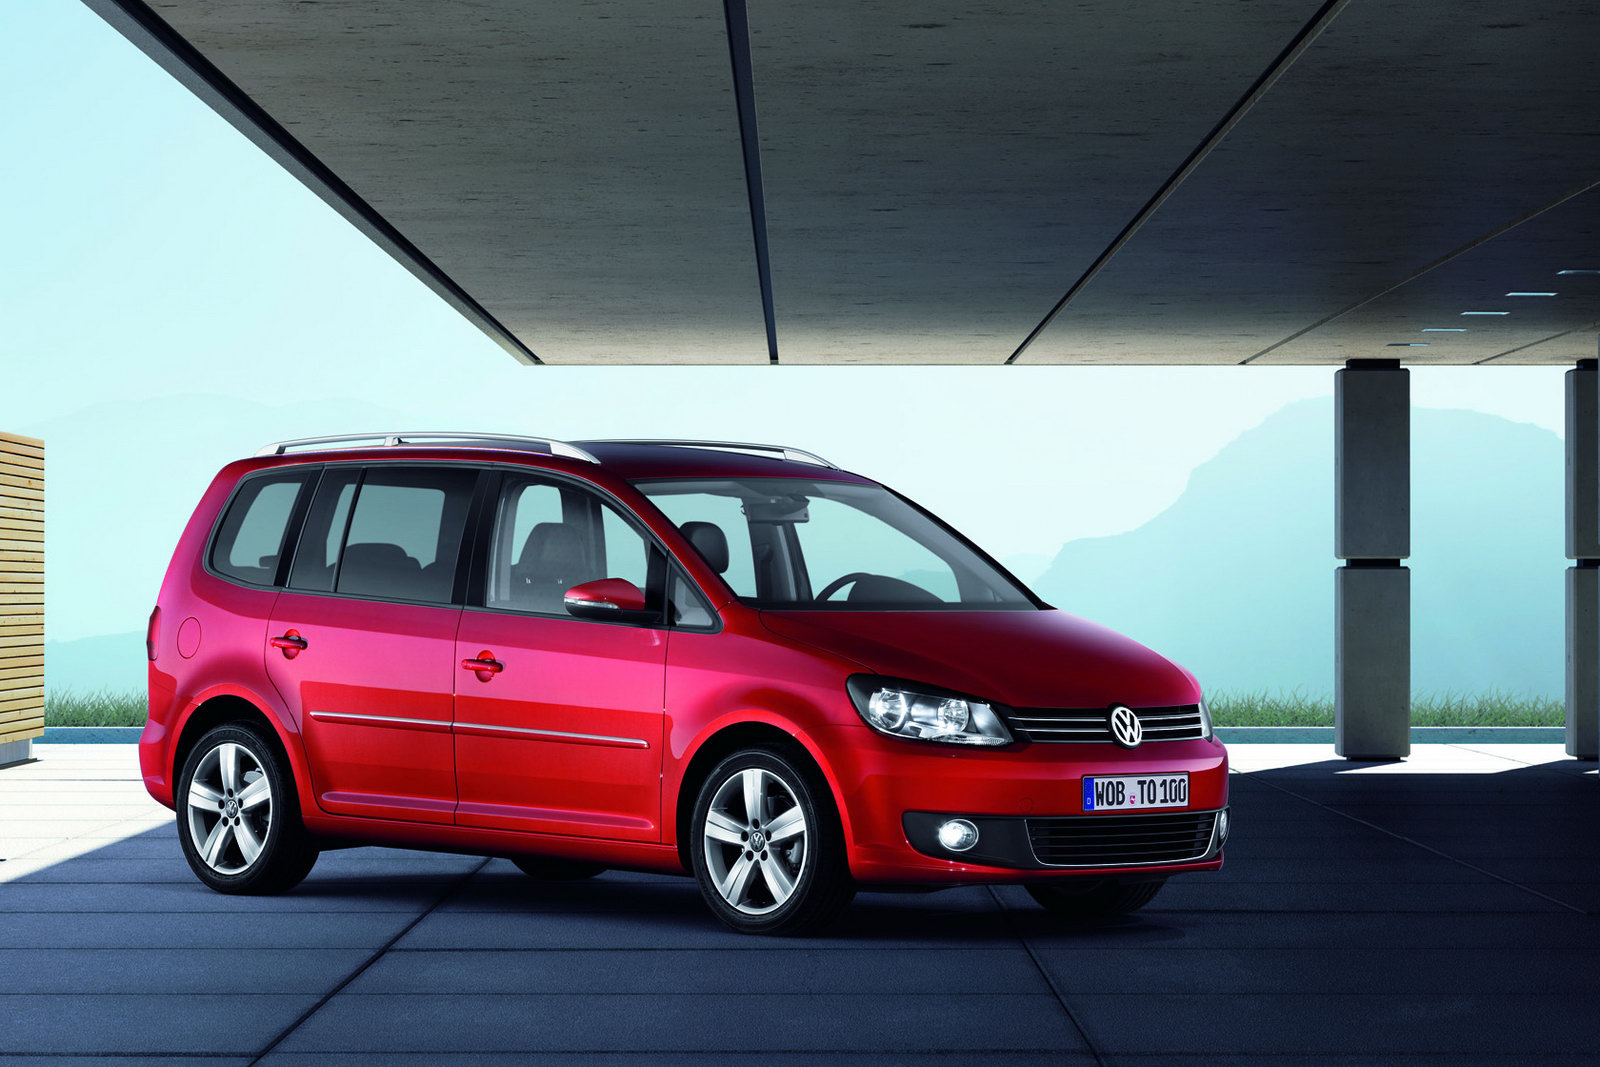 2011 Volkswagen Touran 7-Seater MPV Receives Second Mid-Life Facelift | Carscoops